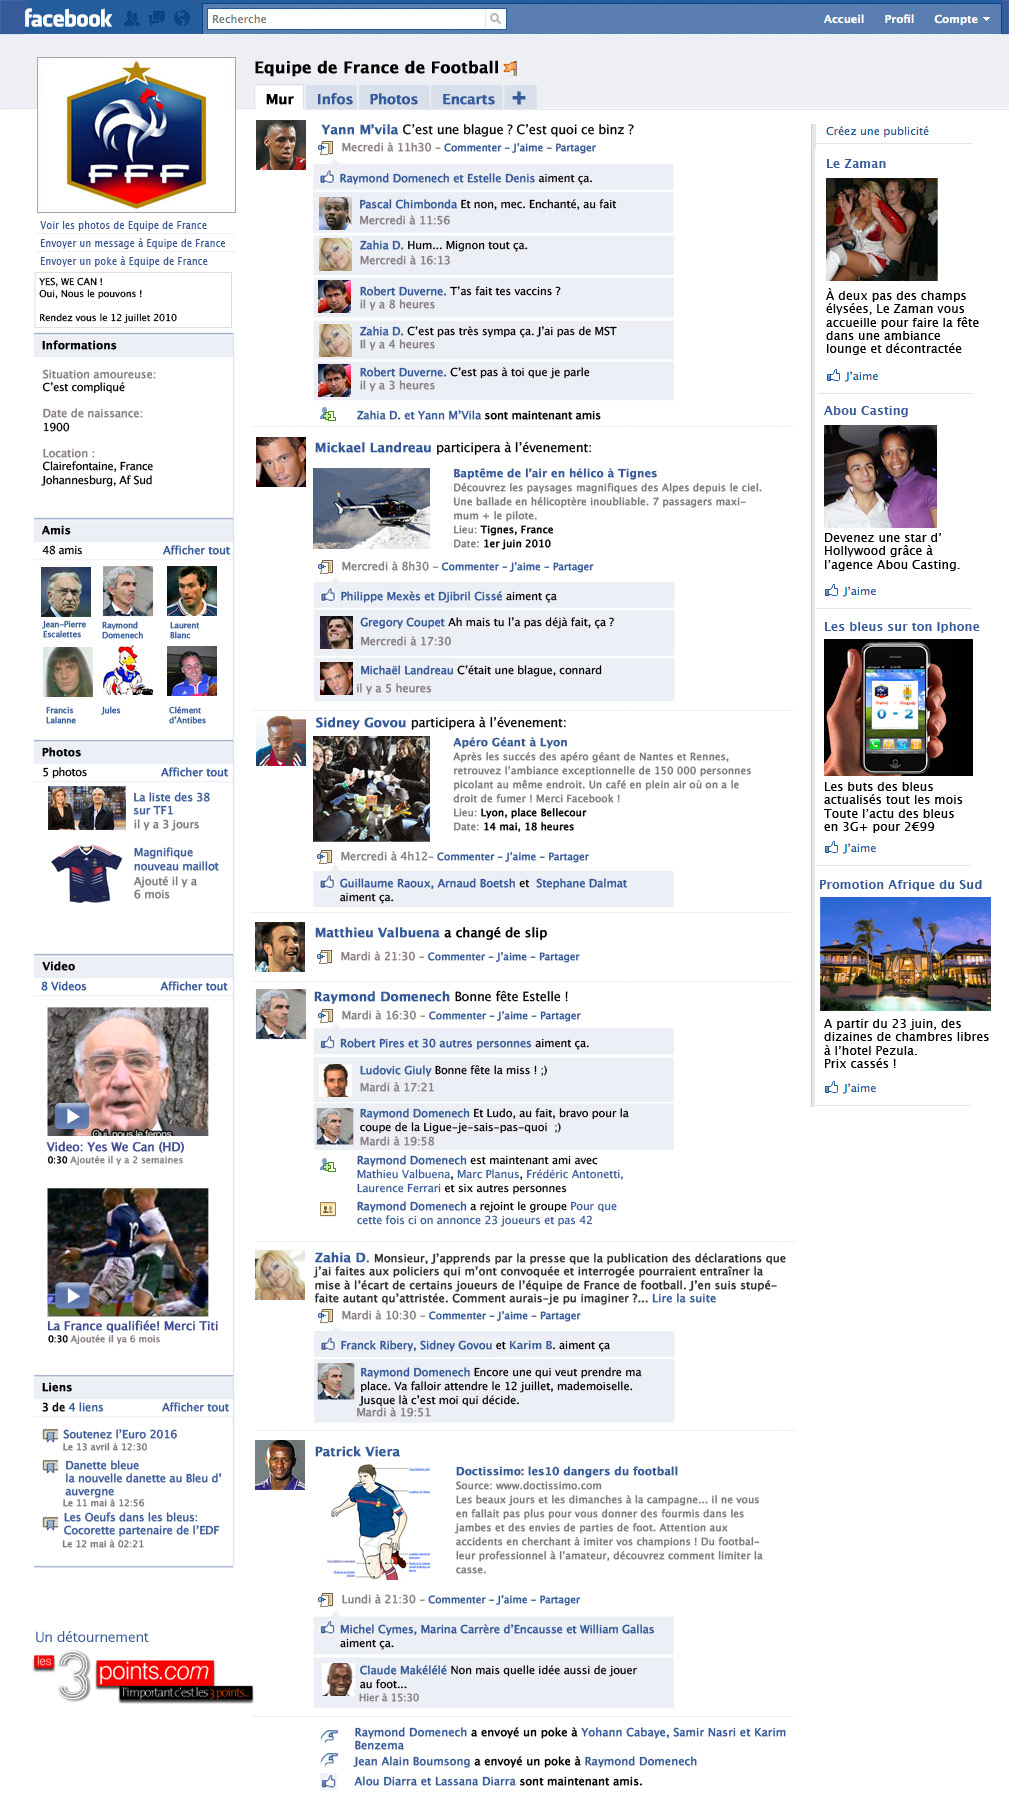 facebook equipe de france football L'équipe de France de Football sur Facebook : la page !